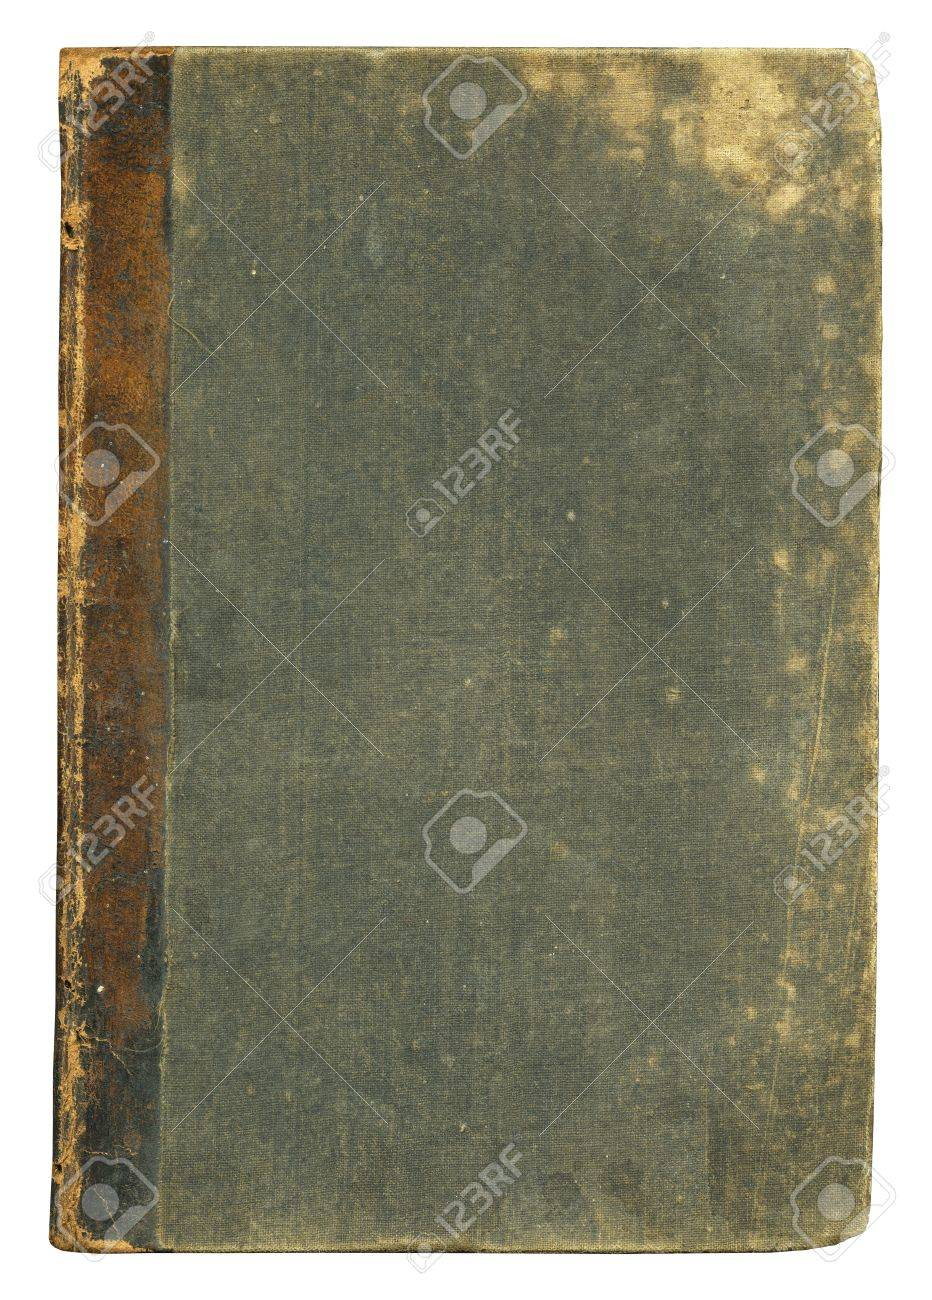 Blank Old Book Cover, Isolated. Stock Photo, Picture And Royalty ...